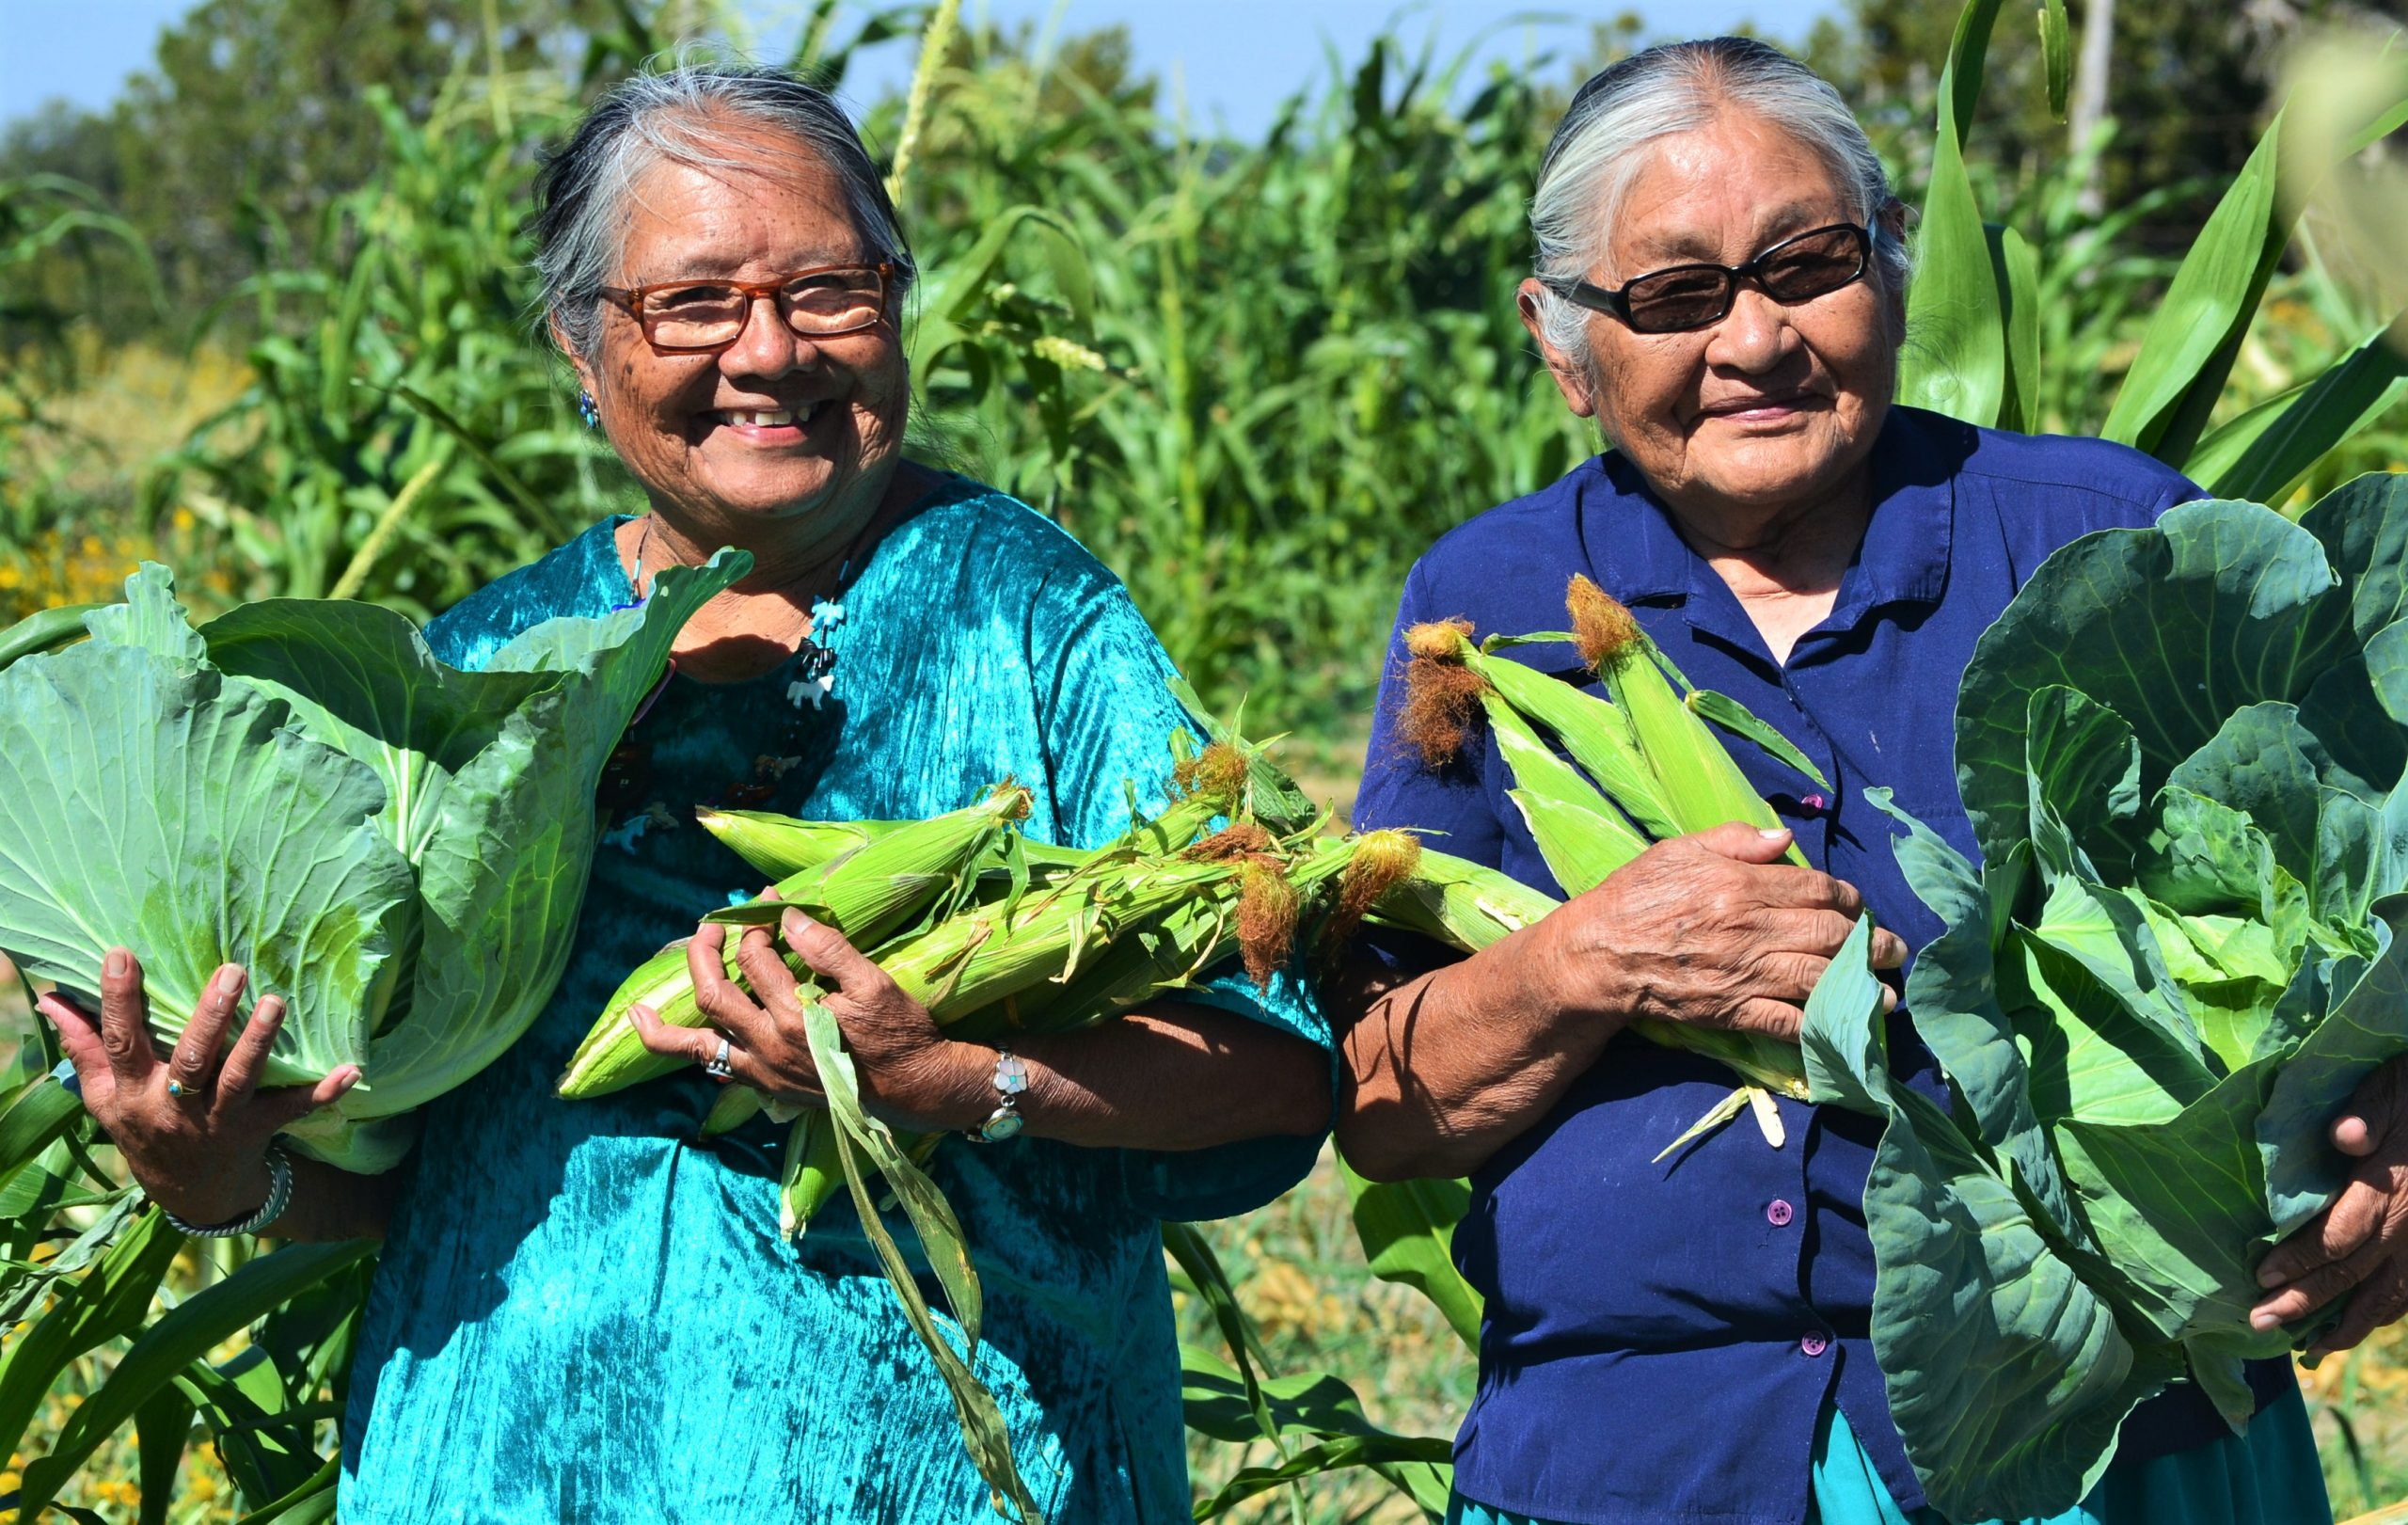 Harriet and Helen (Diné) community elders from Vanderwagen, N.M., hold corn and cabbage at Spirit Farm. PHOTO © JAMES SKEET. Photo originally appeared in www.GreenFireTimes.com